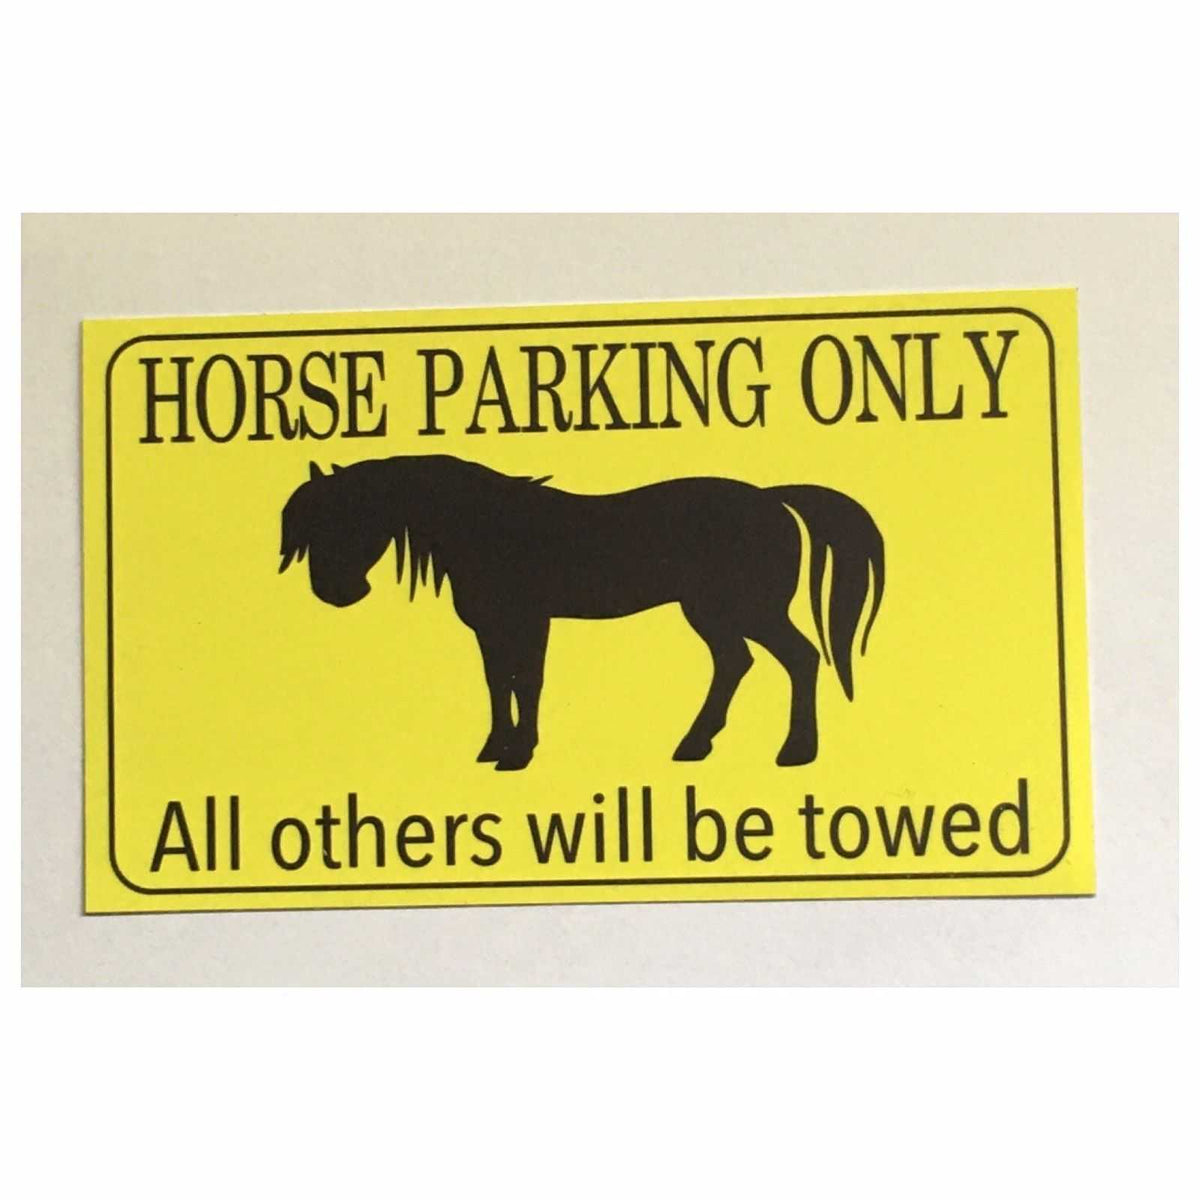 Horse Parking Only Horses Gate Sign The Renmy Store